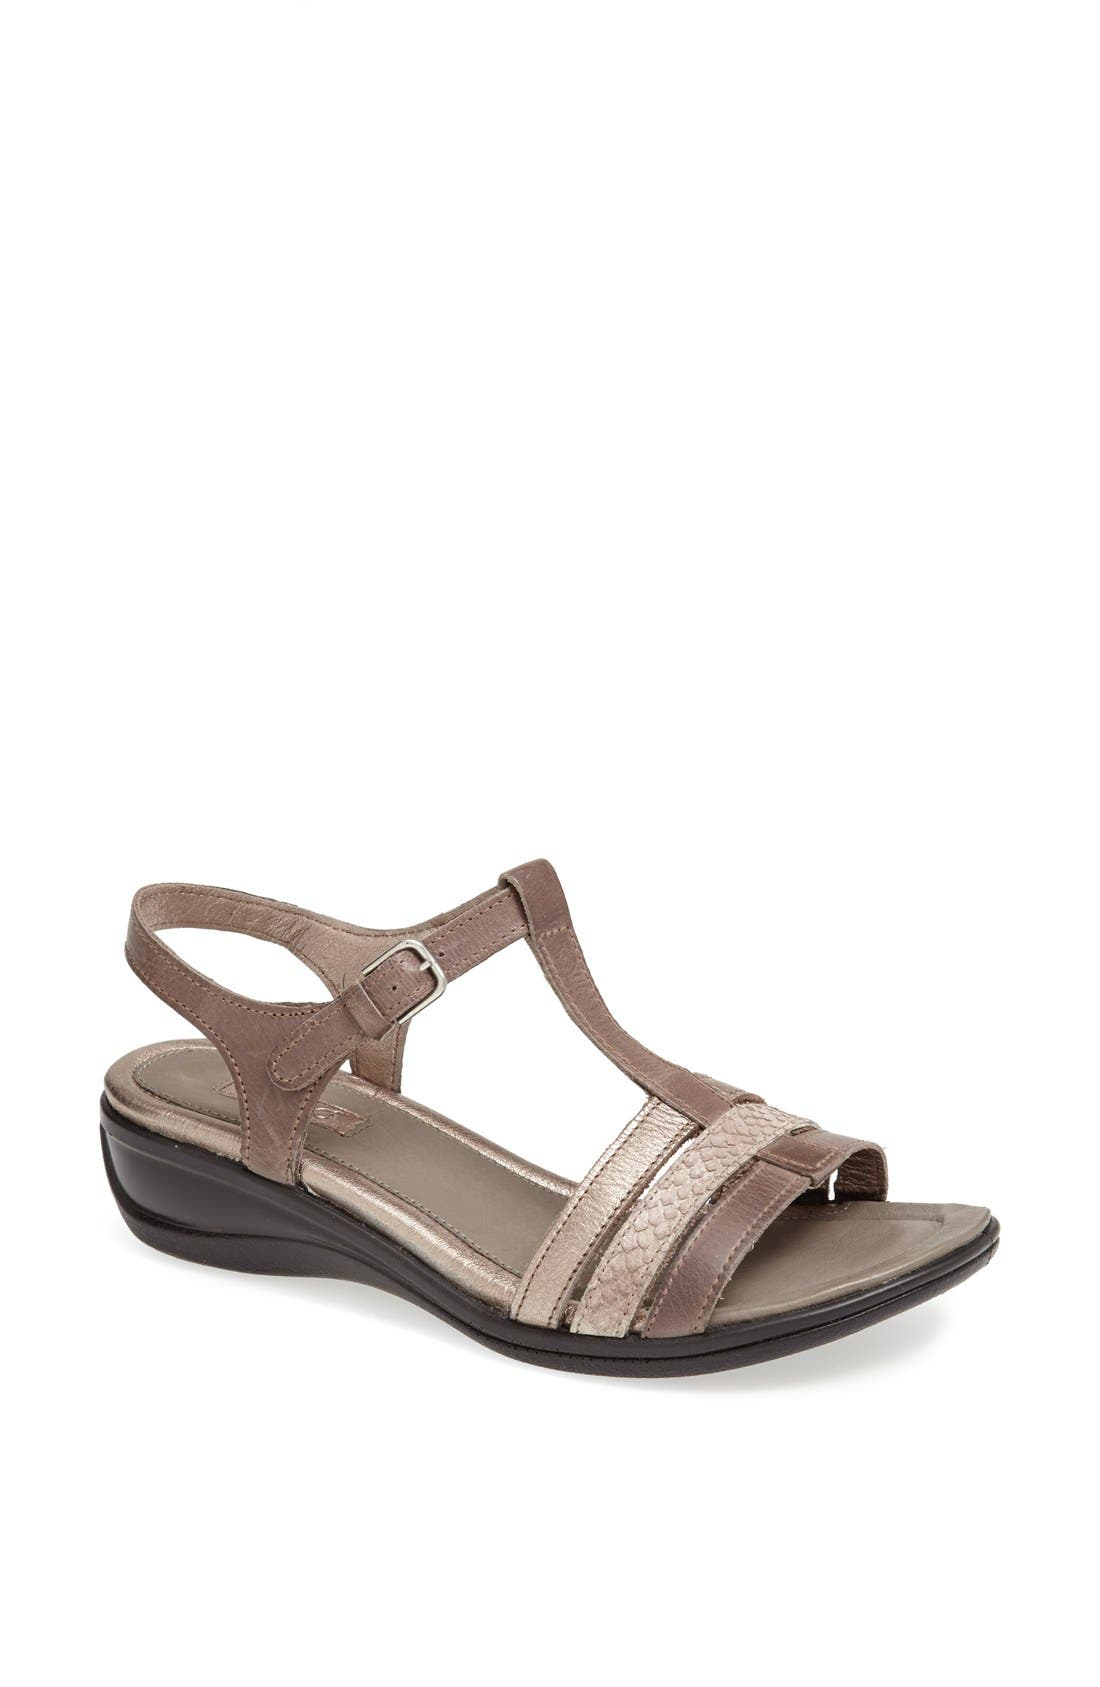 Alternate Image 1 Selected - ECCO 'Sensata' Sandal (Regular Retail Price: $119.95)